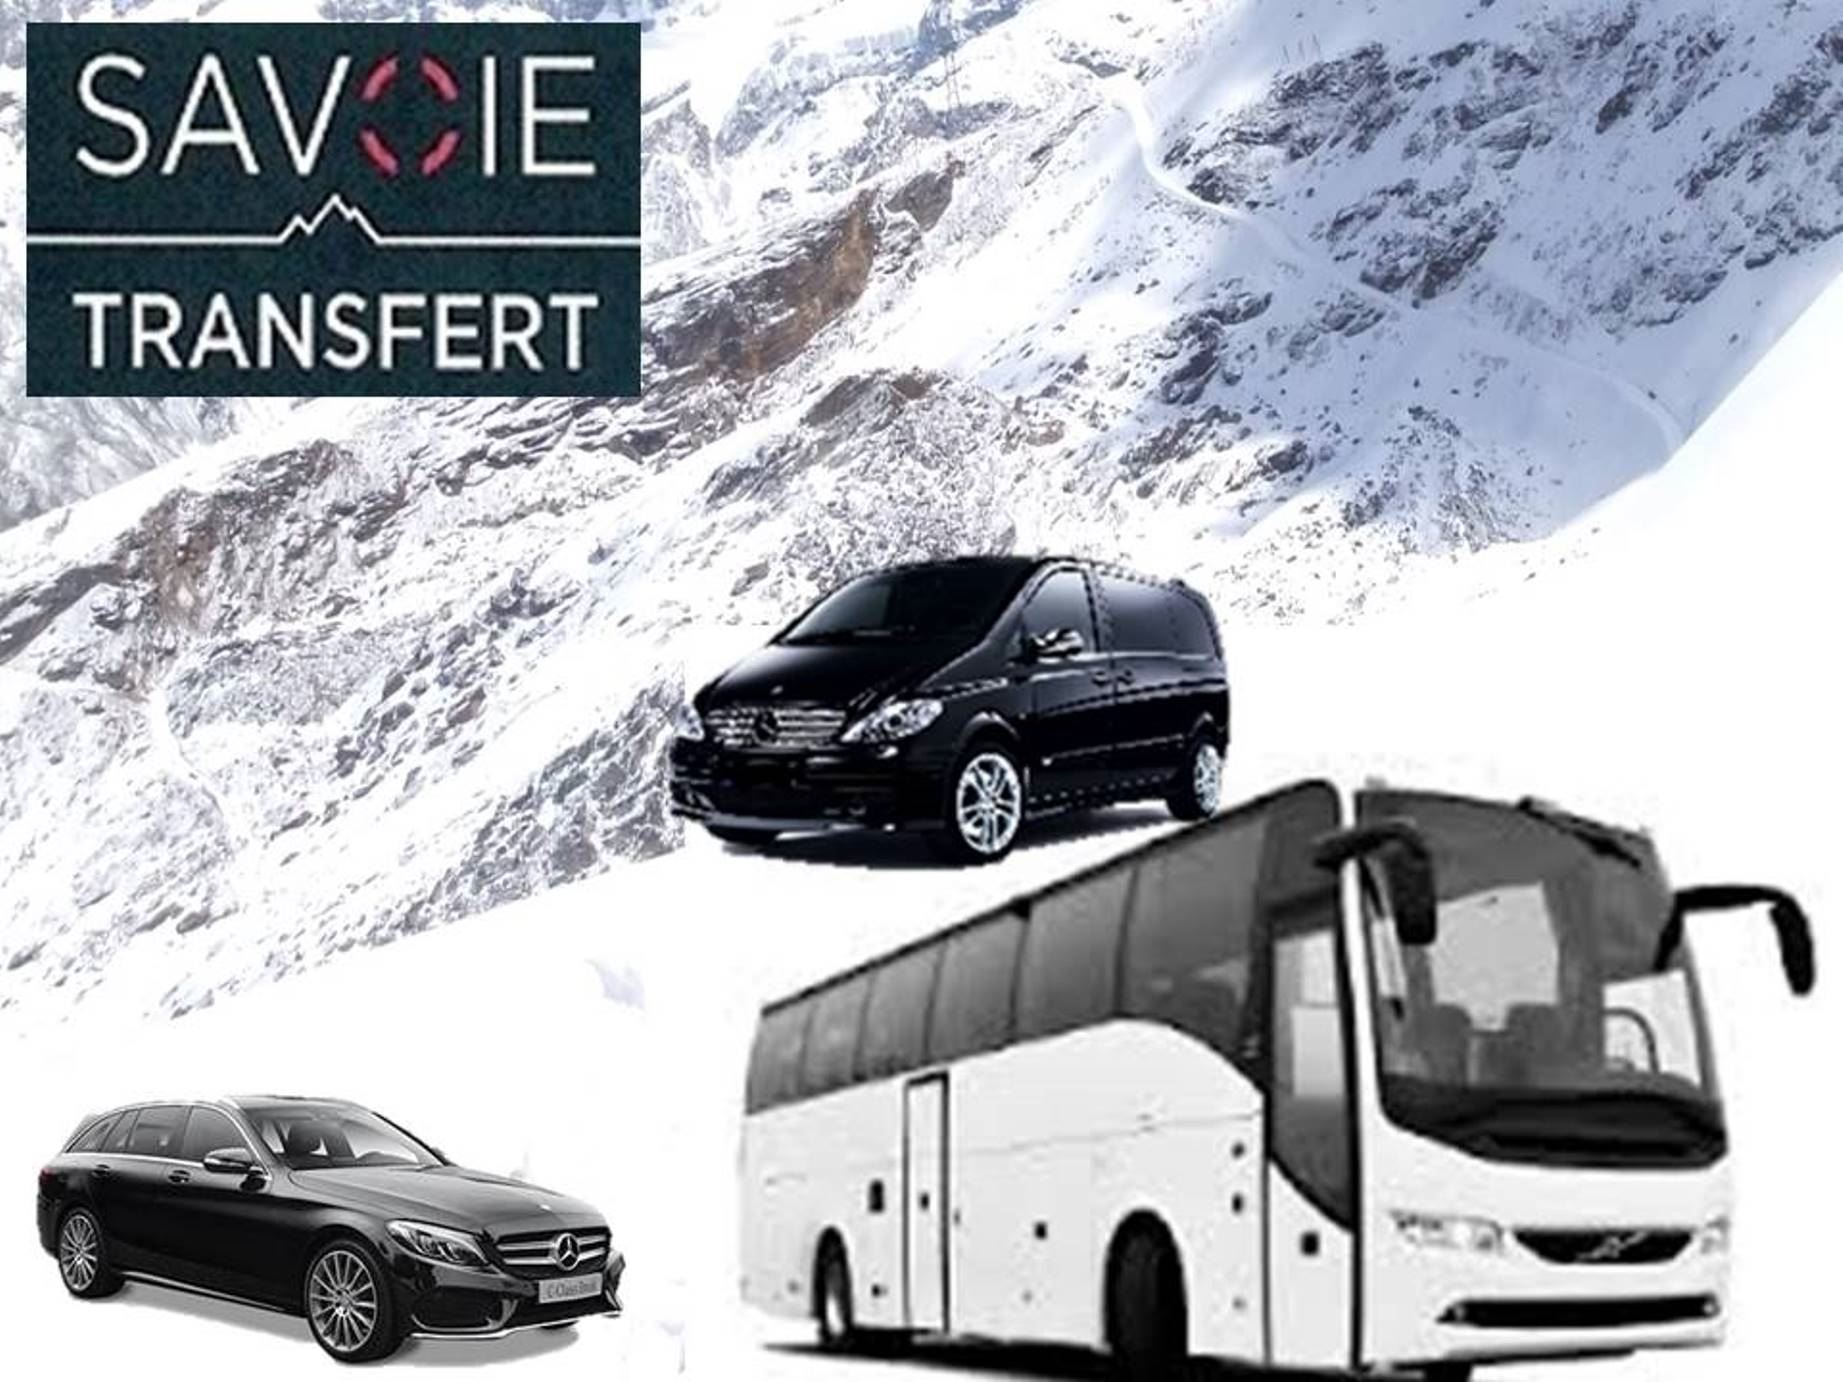 PRIVATE TRANSFER from CHAMBERY AIRPORT ROUND TRIP with VAL THORENS TRANSFERT